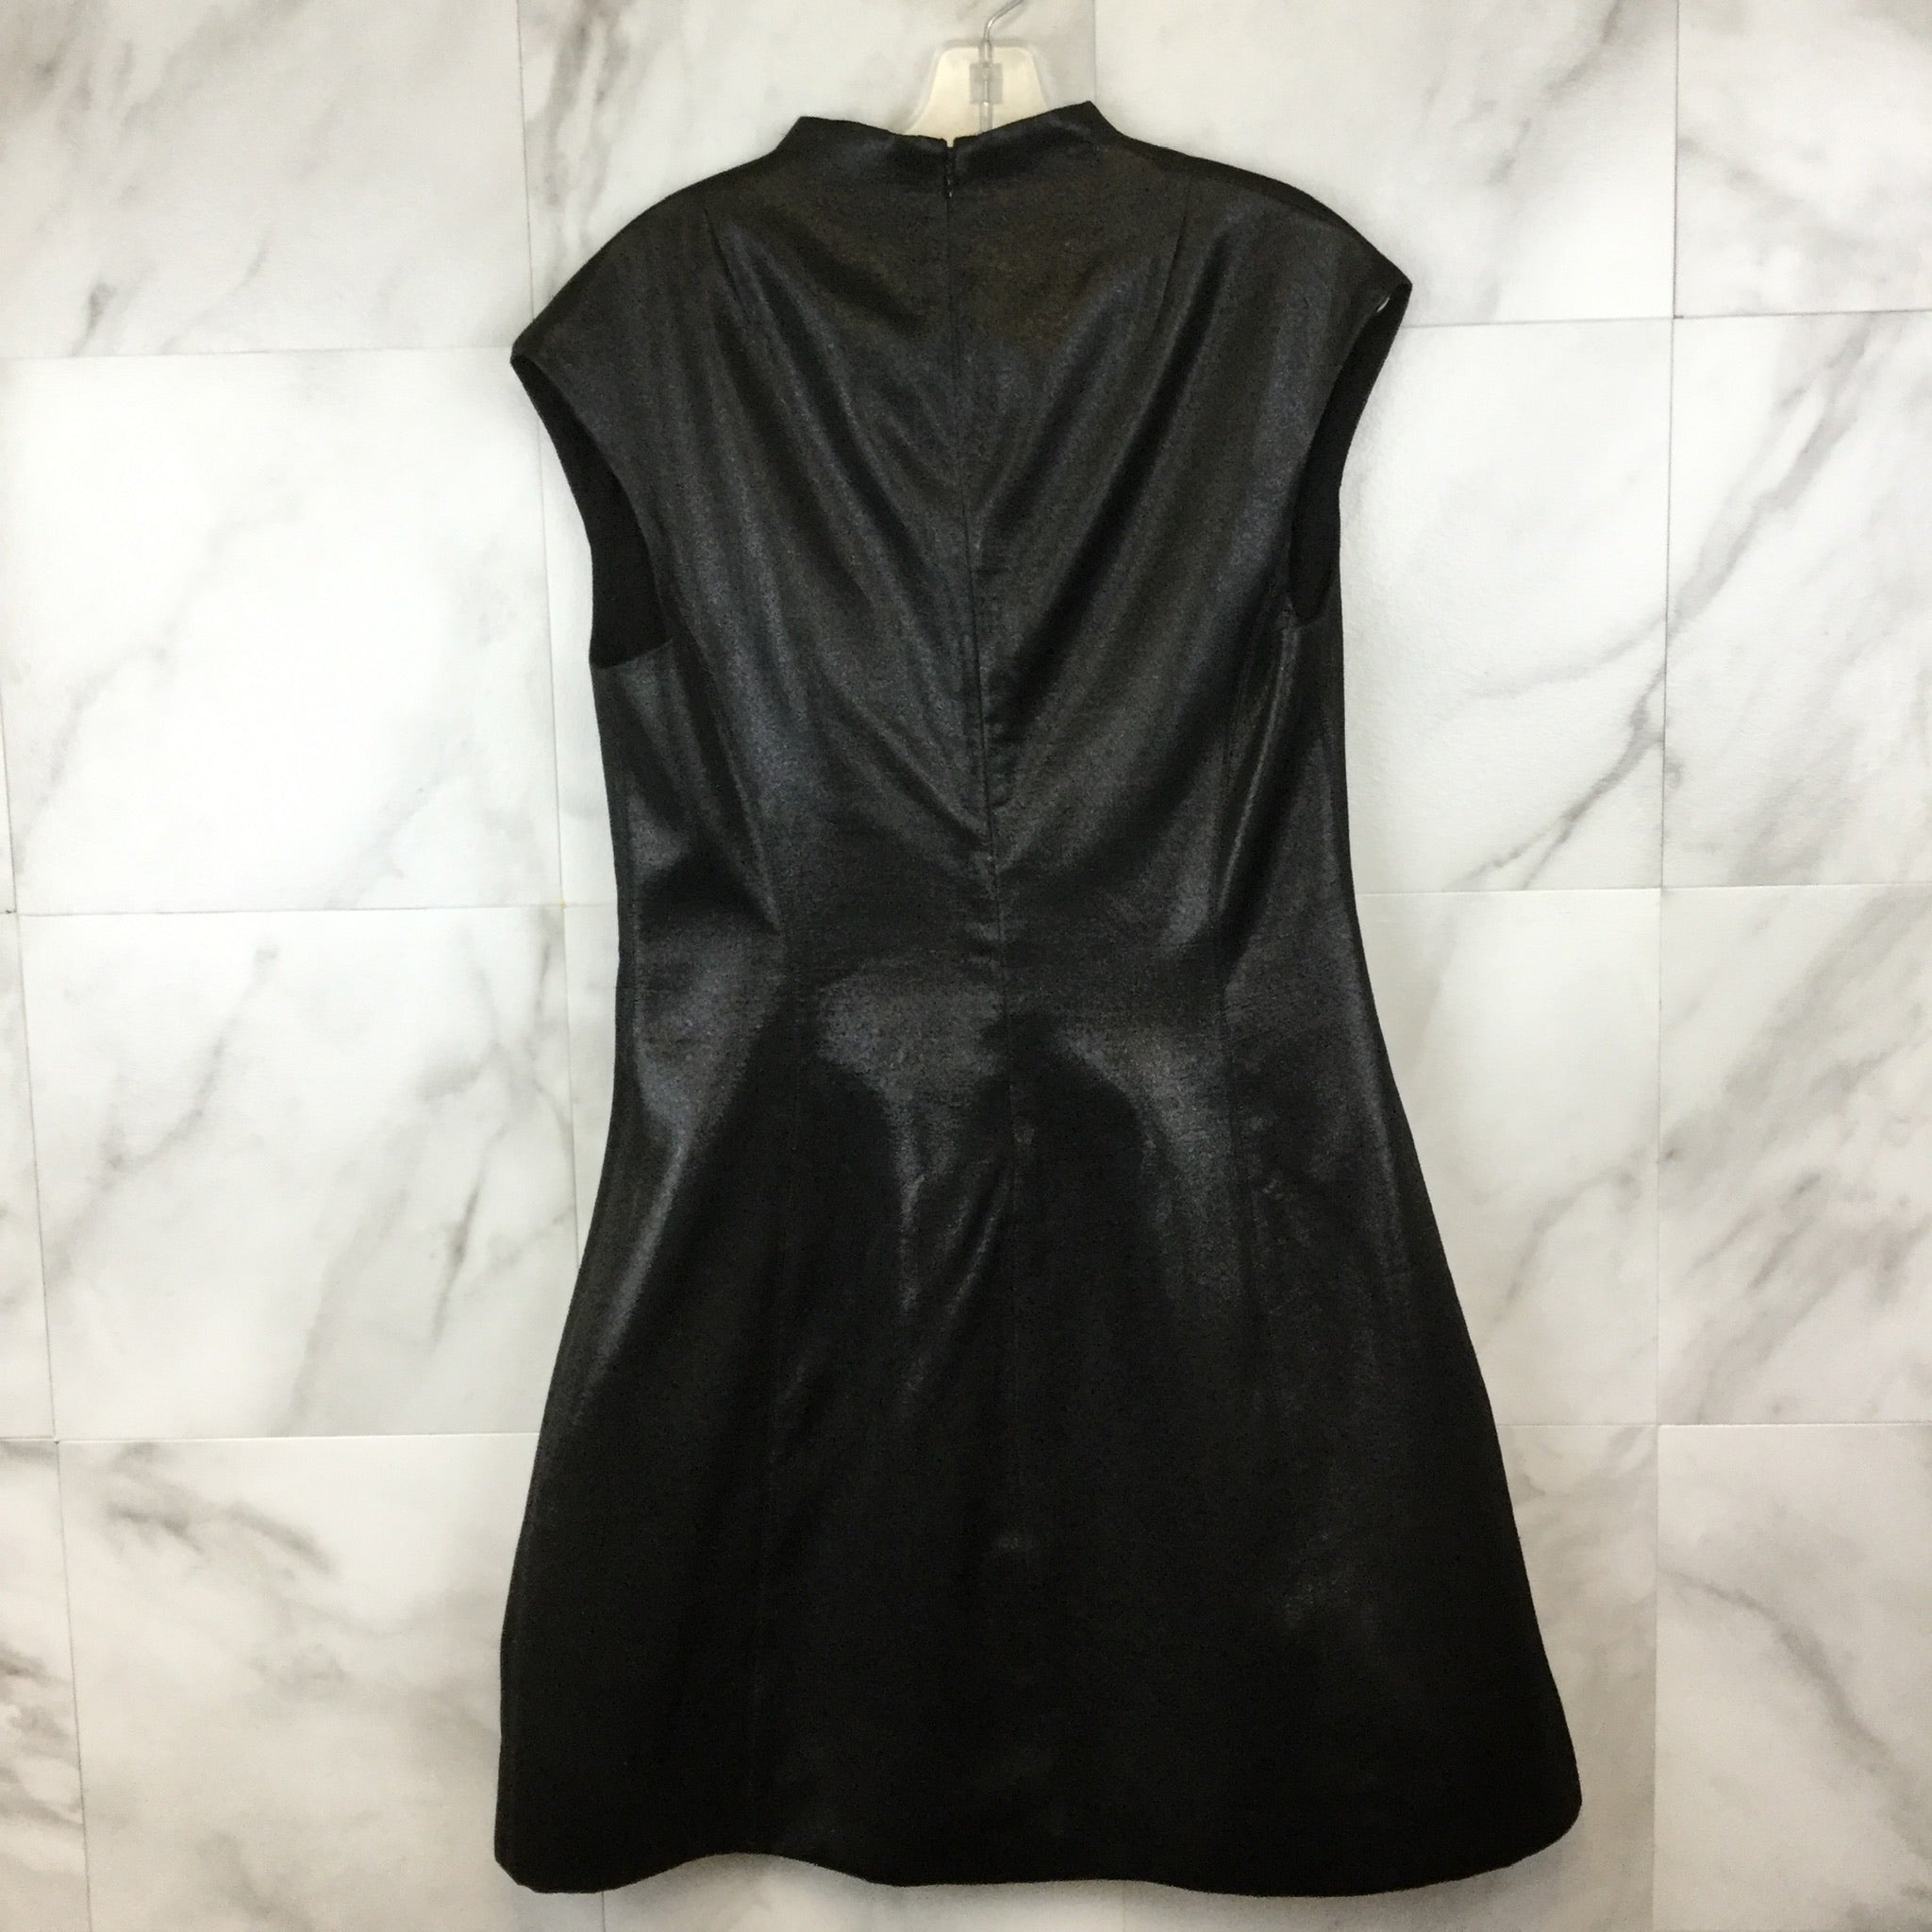 Halston Heritage Deep V Flare Black Metallic Dress- size 10